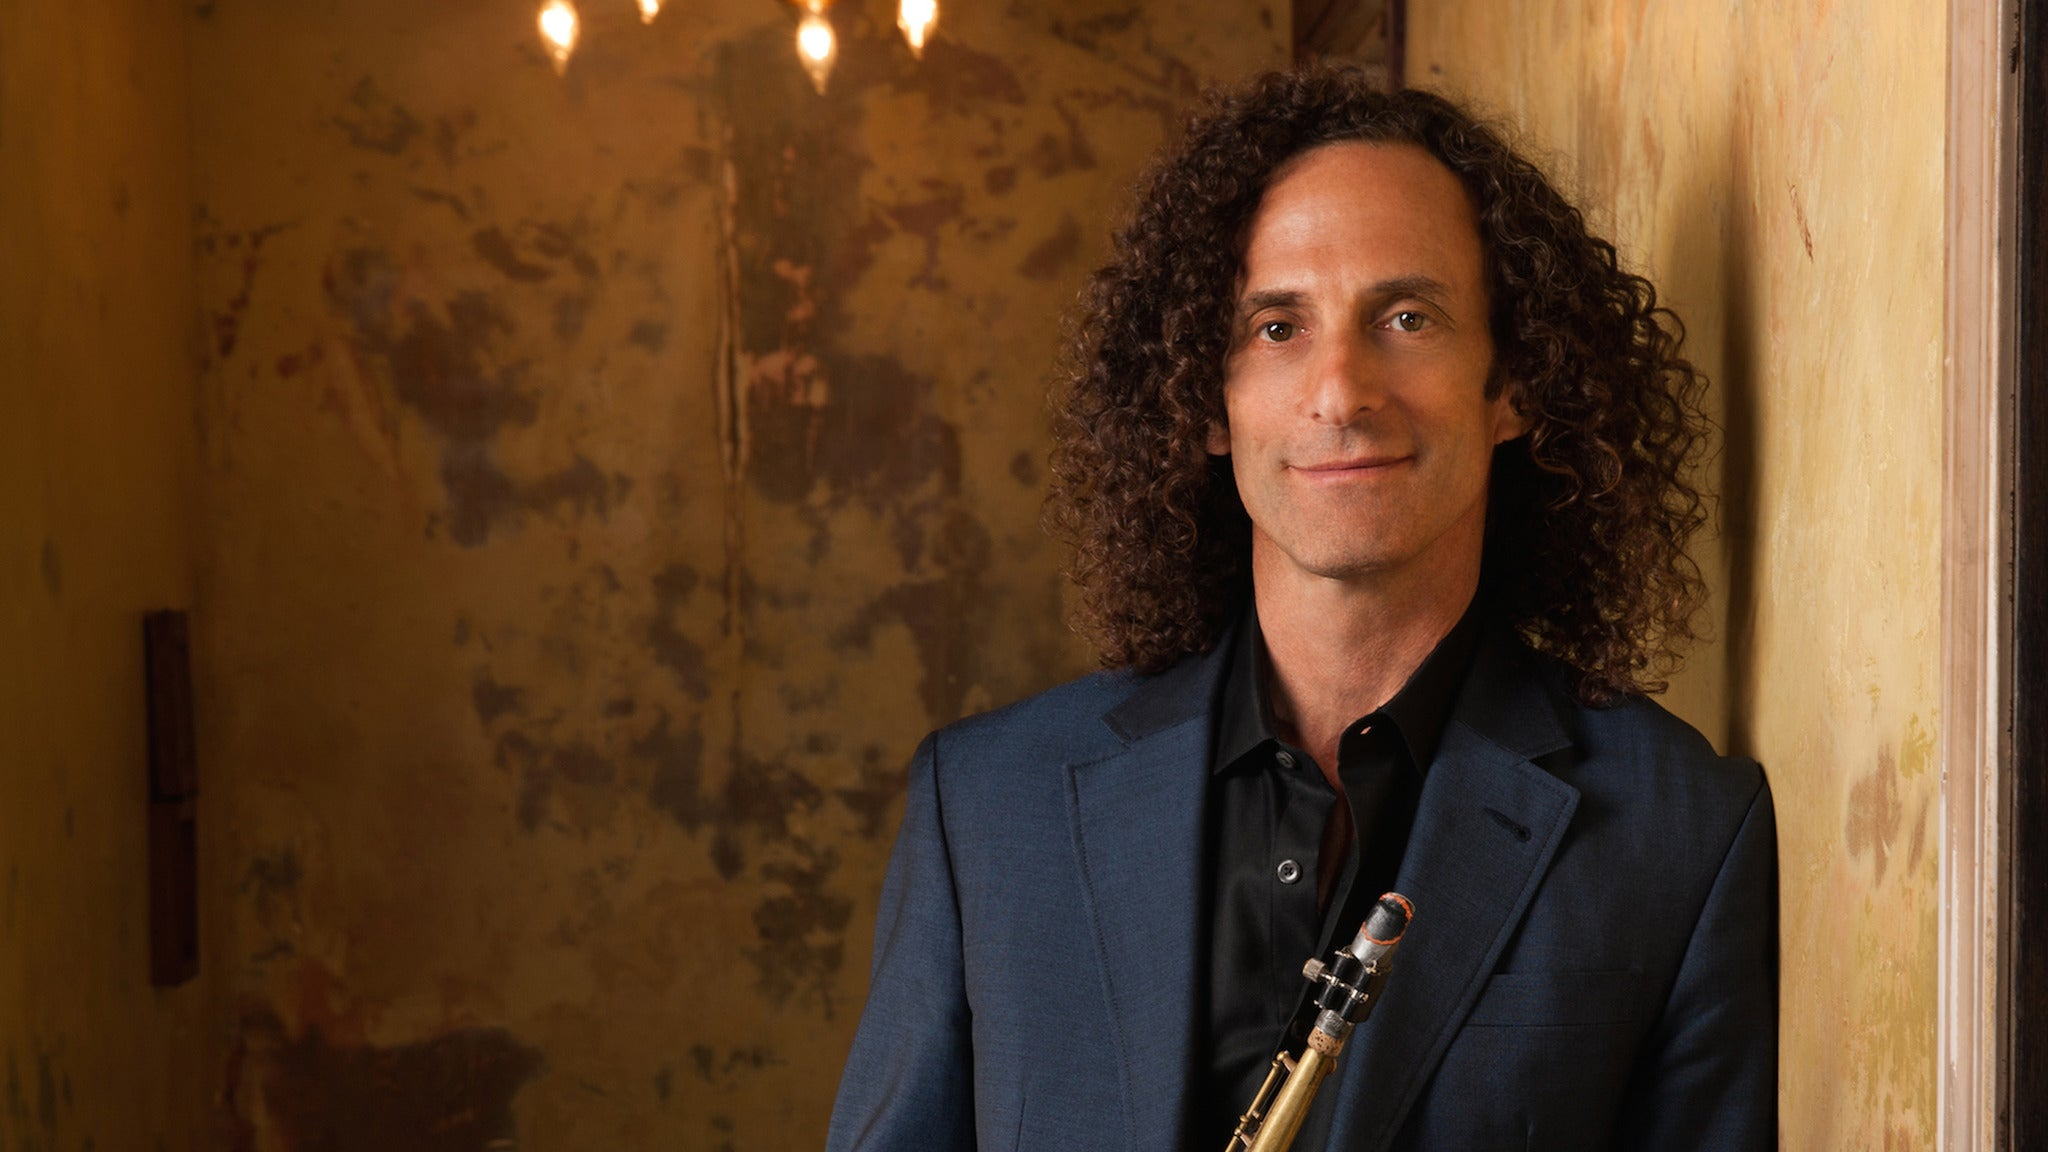 Kenny G at Blue Note Hawaii - Honolulu, HI 96815